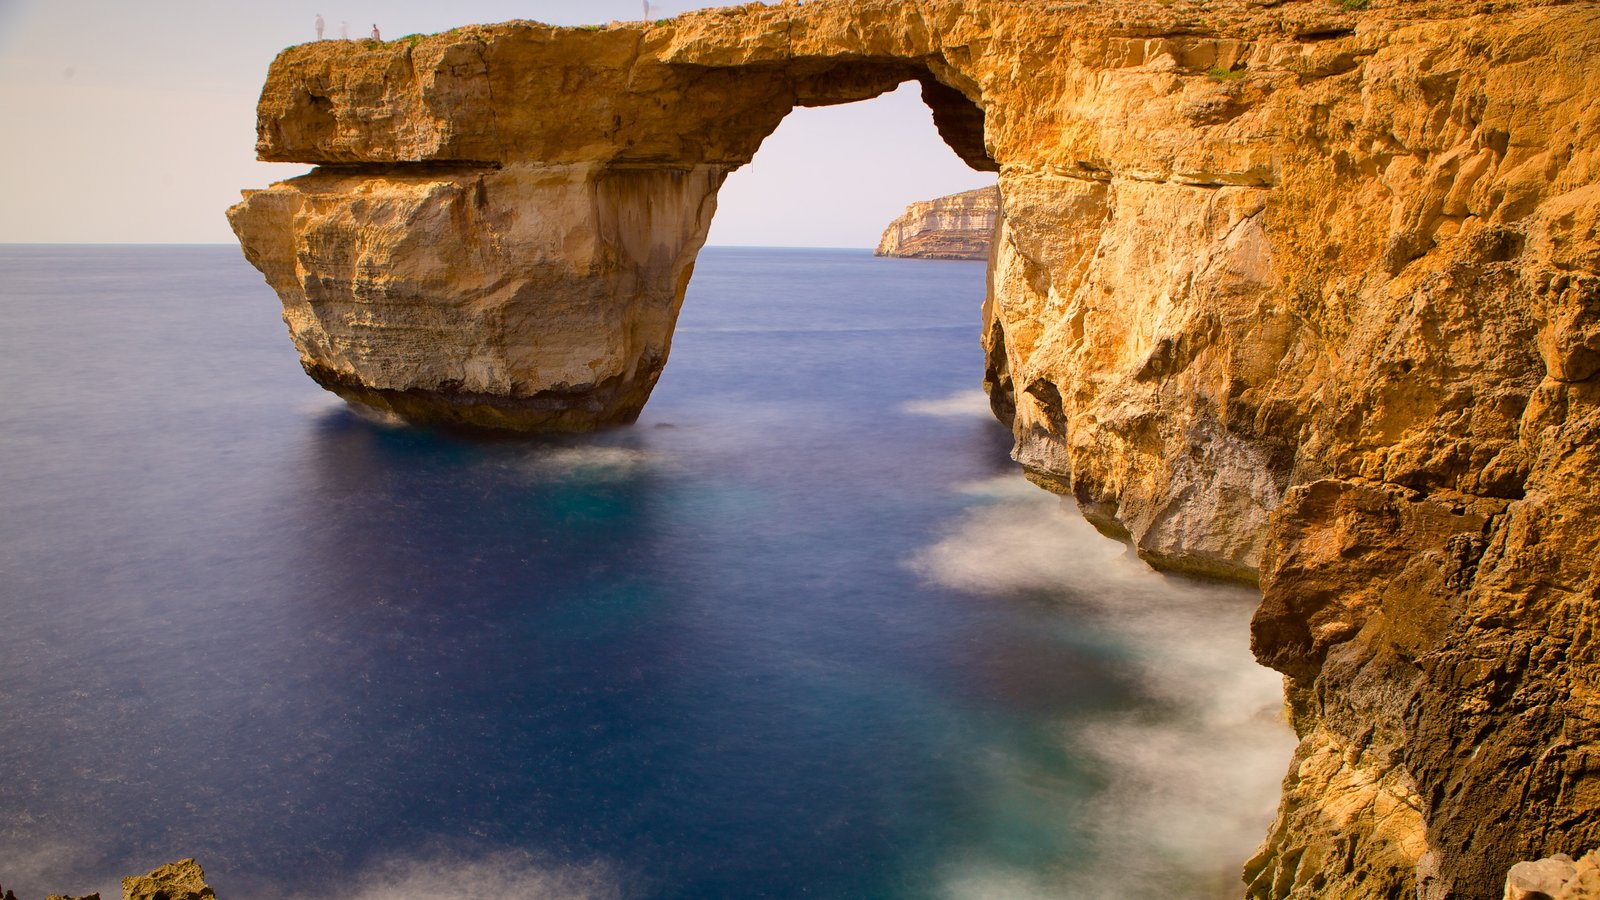 Azure Window which includes a sunset and rugged coastline